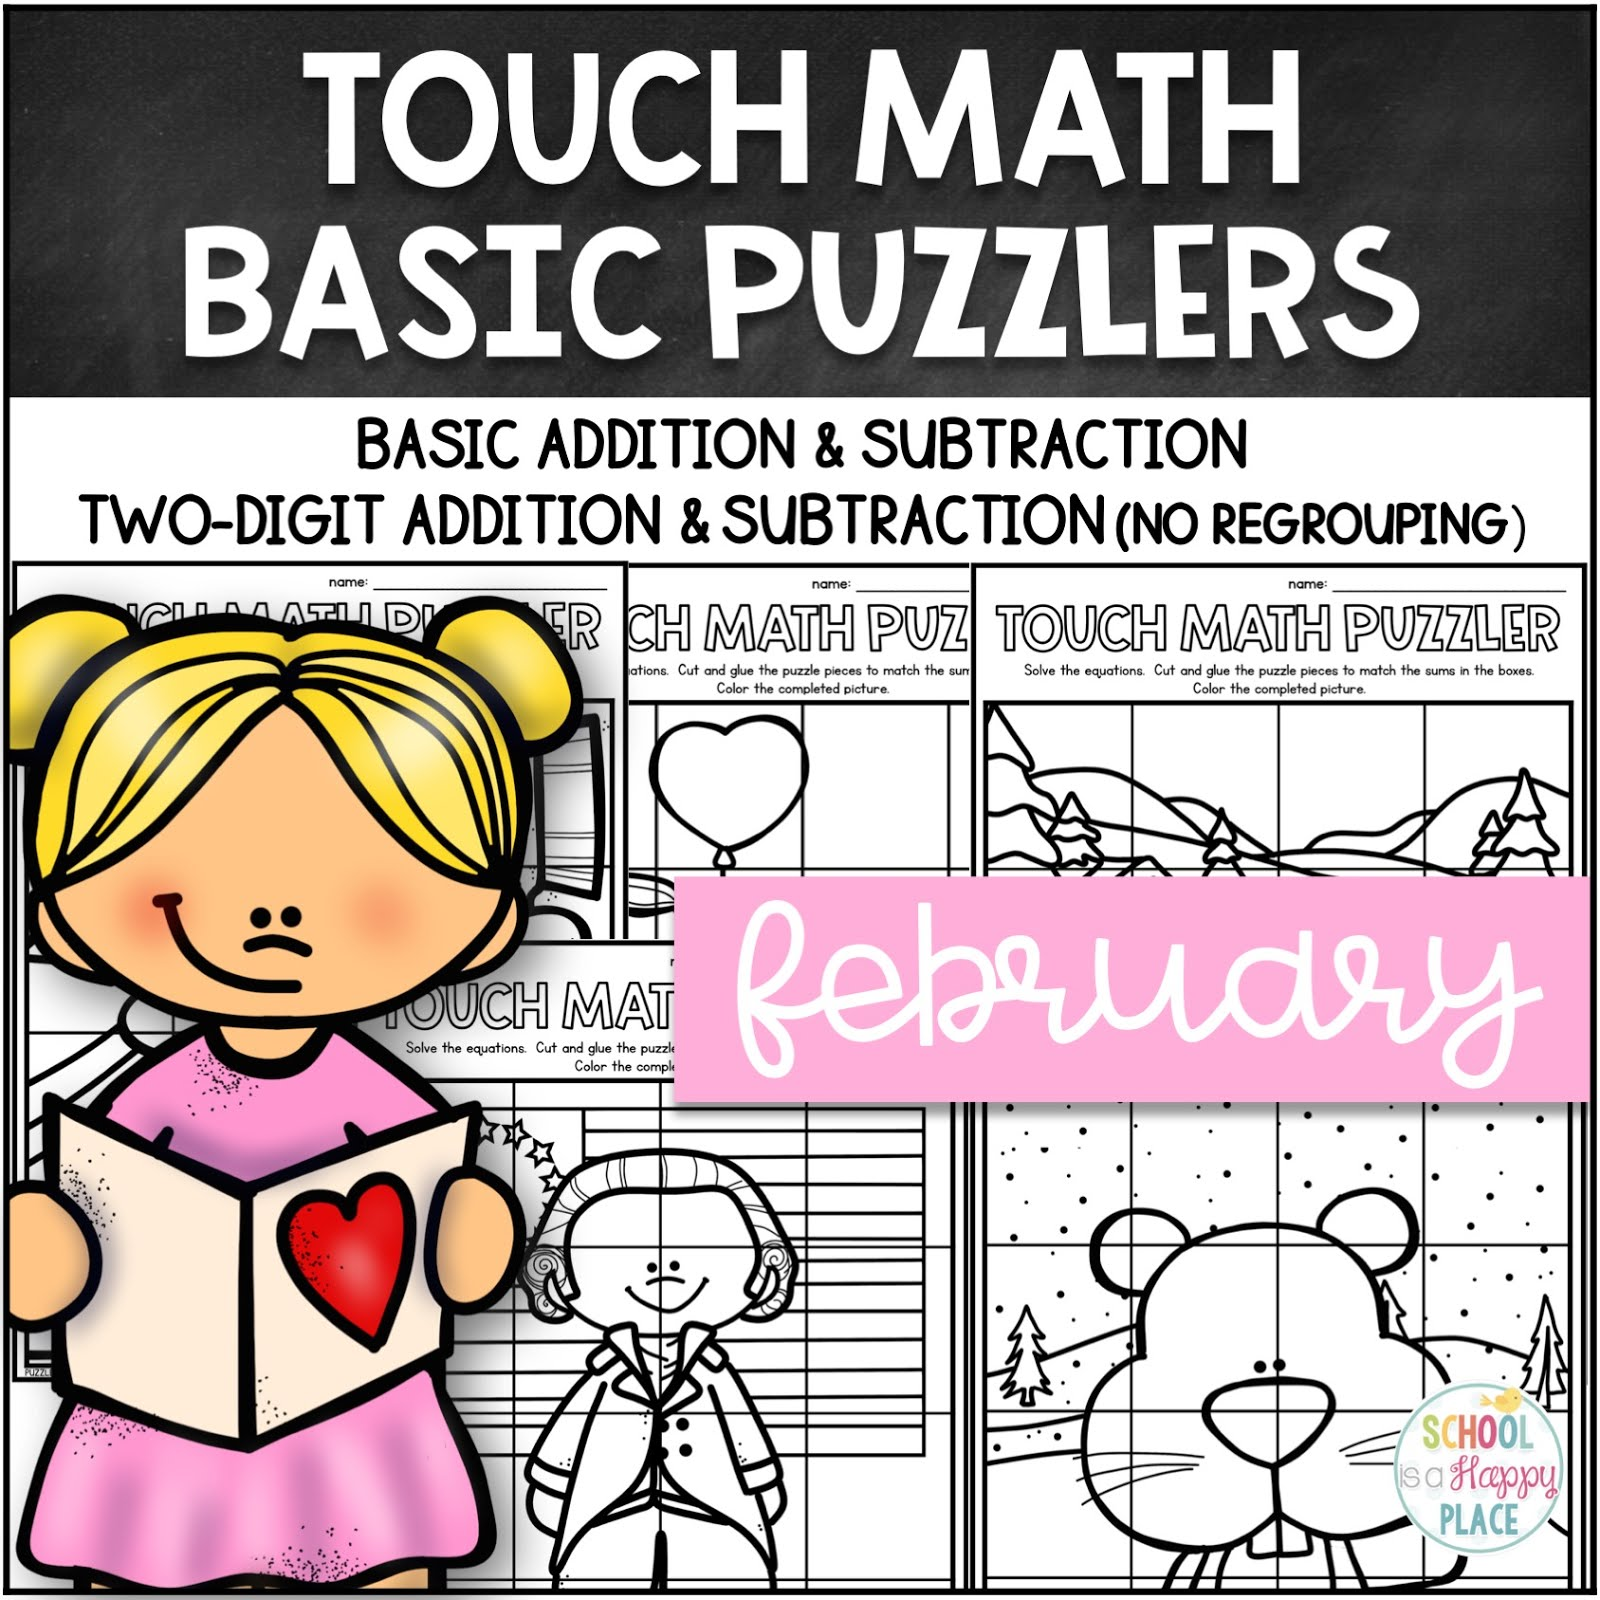 Touch Math Puzzlers for February